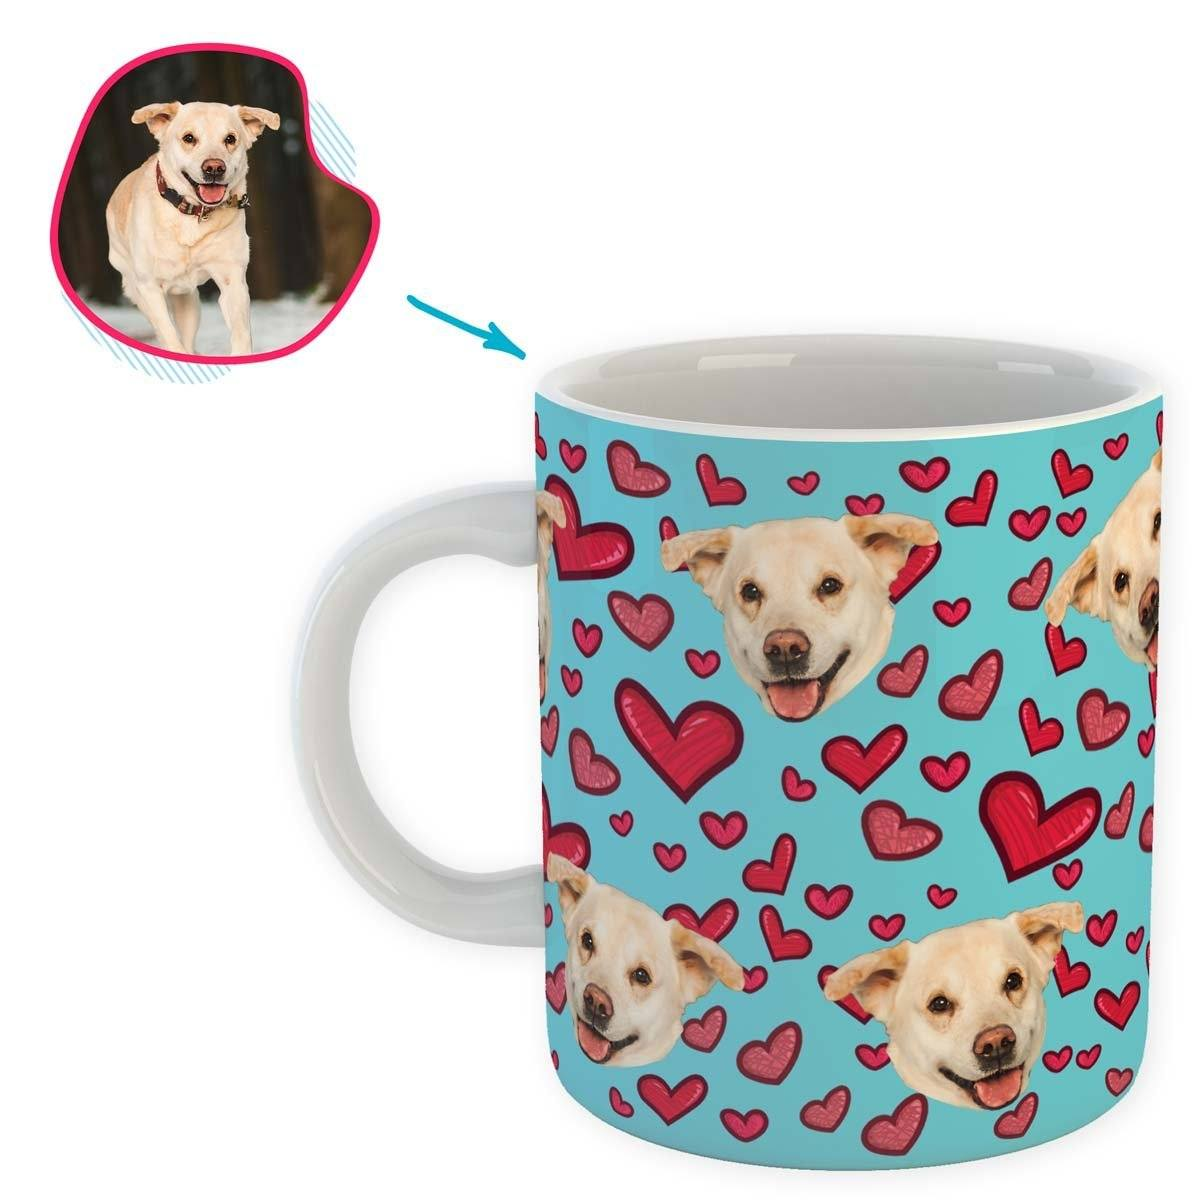 blue Heart mug personalized with photo of face printed on it